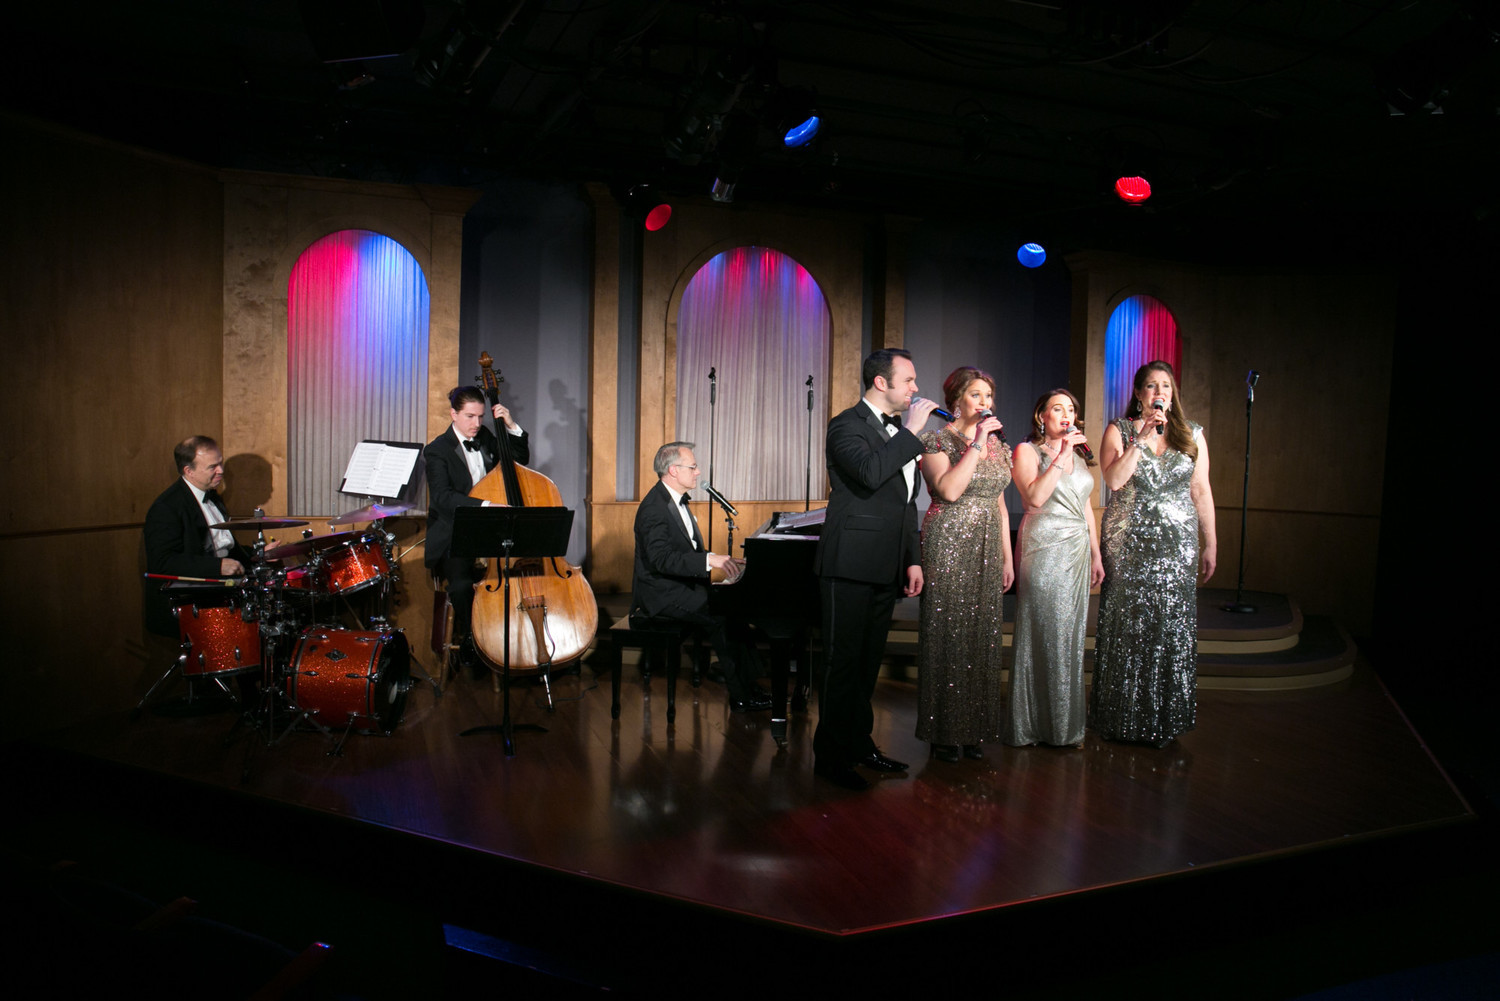 BWW Review: RETURN TO THE PAST WITH SONGBOOK OF THE 40S AT QUALITY HILL PLAYHOUSE at Quality Hill Playhouse